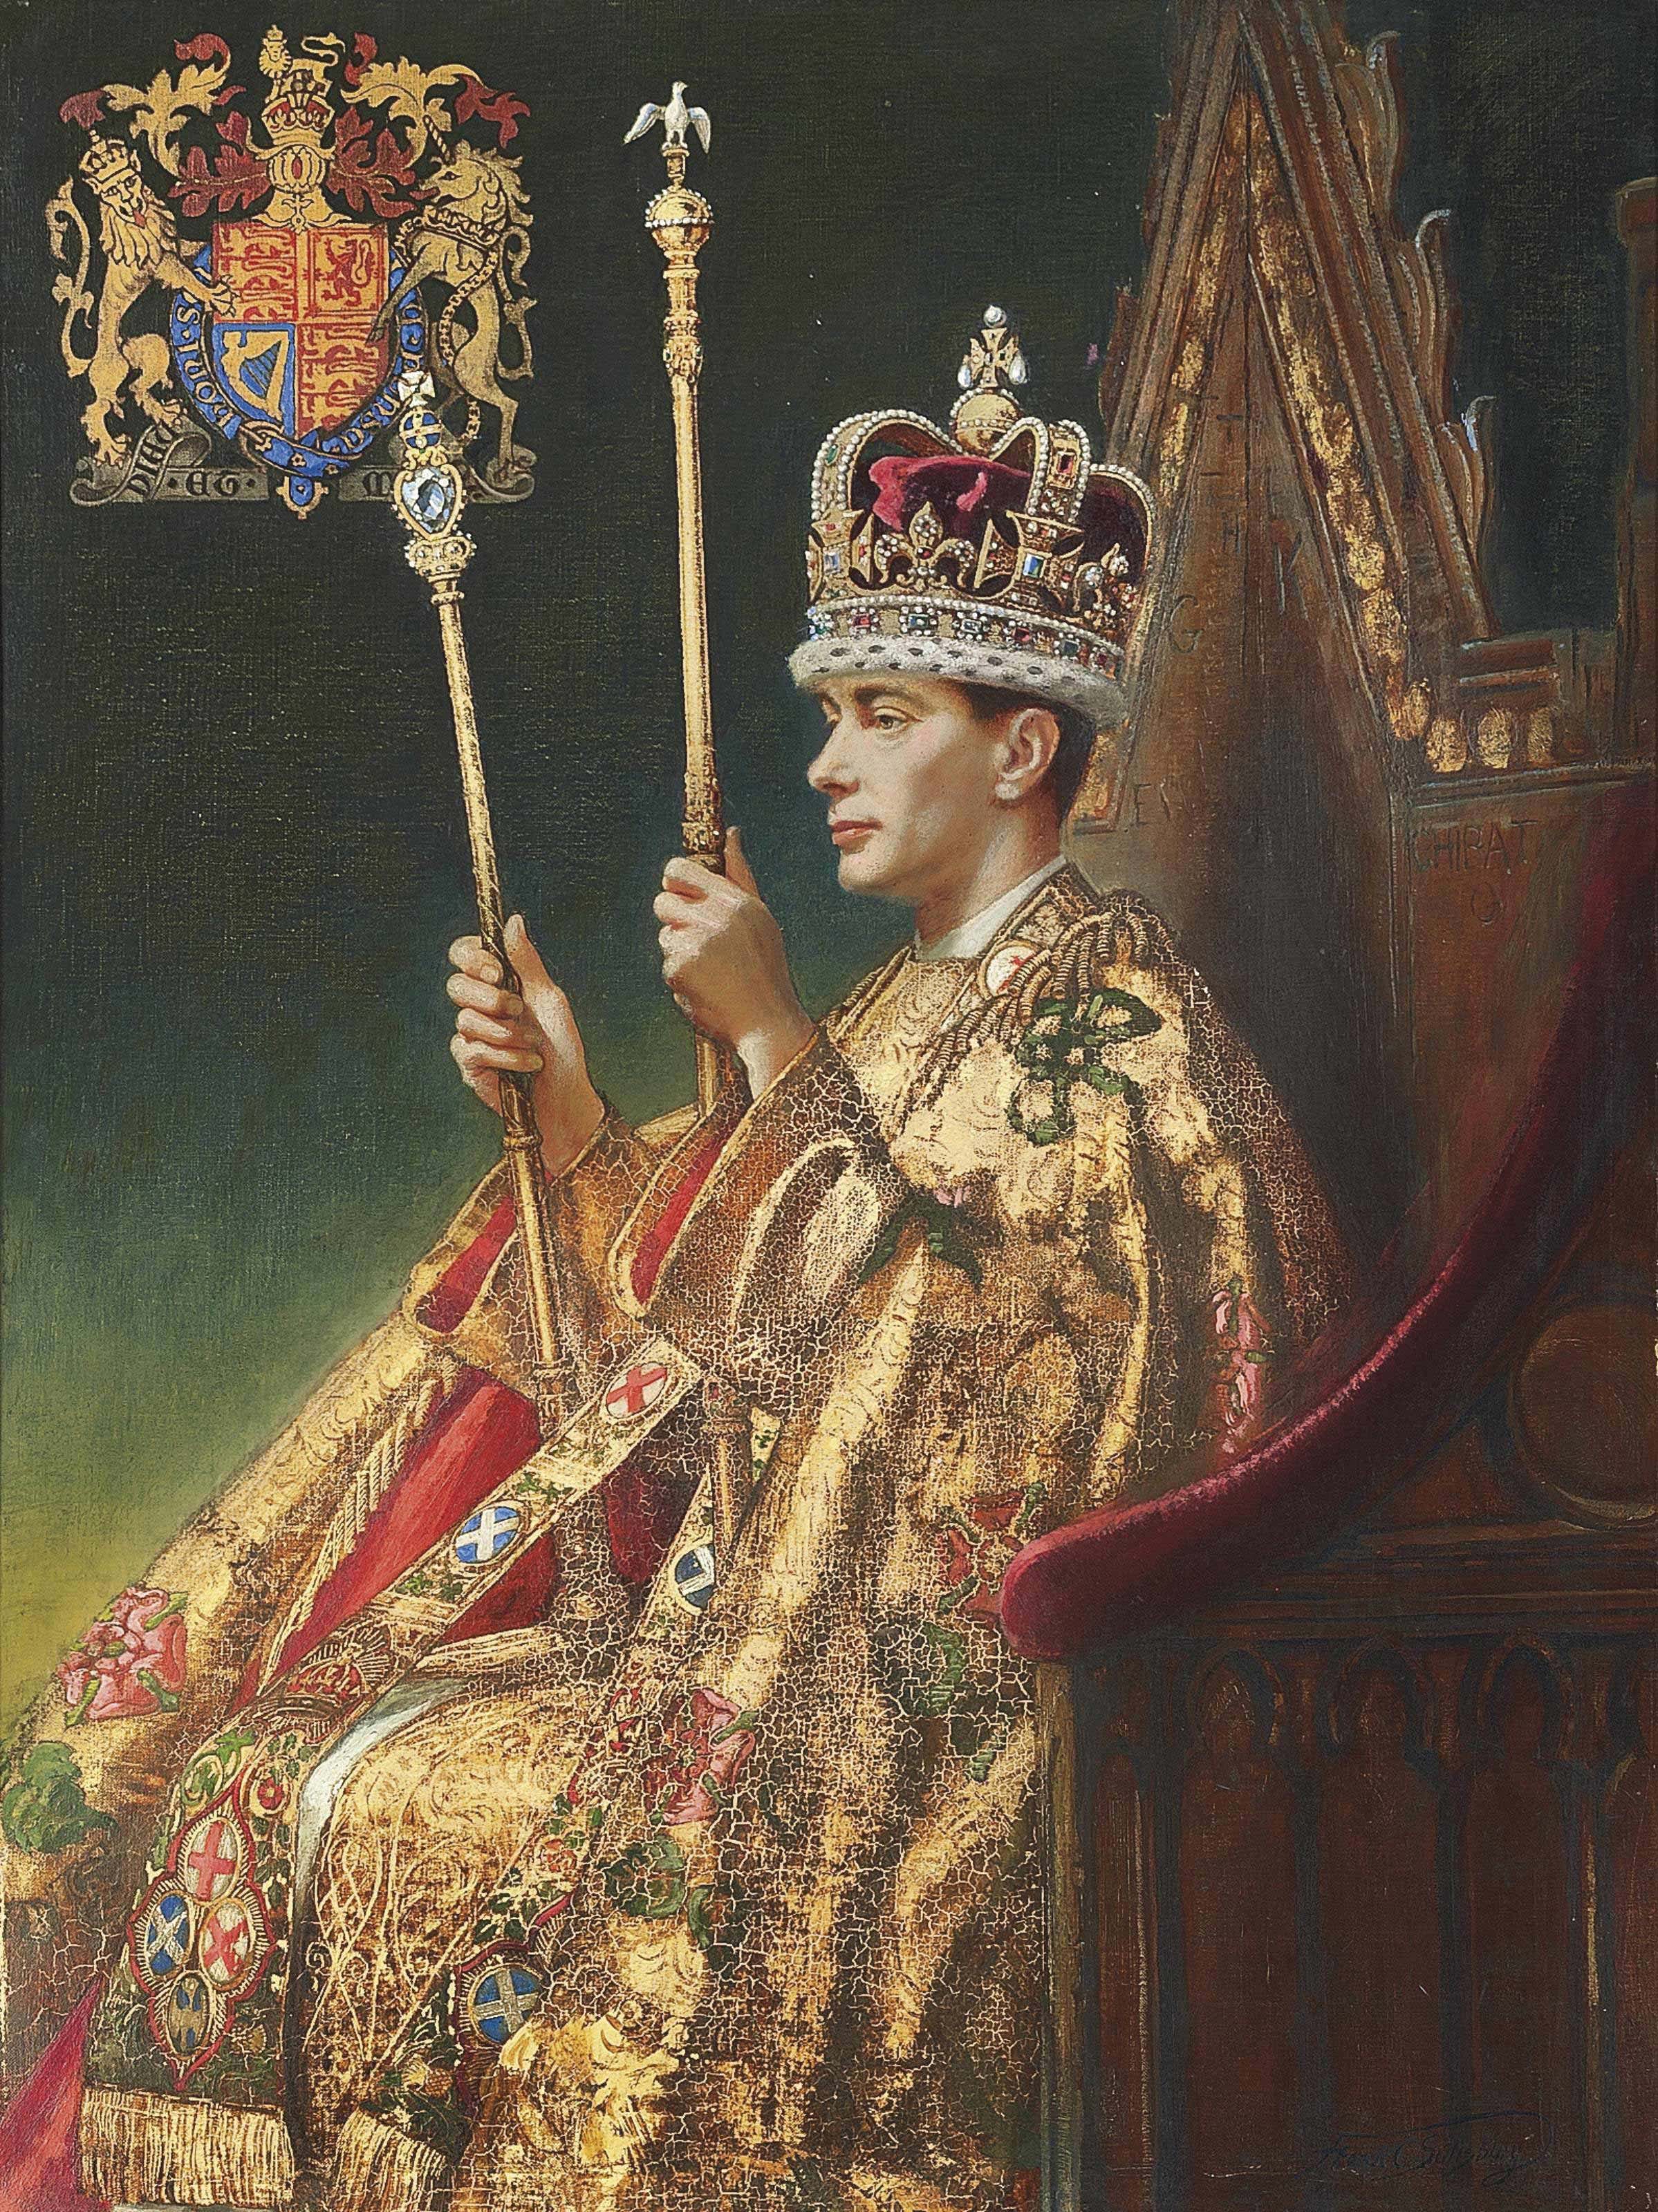 His Majesty King George VI, portrait for the coronation picture